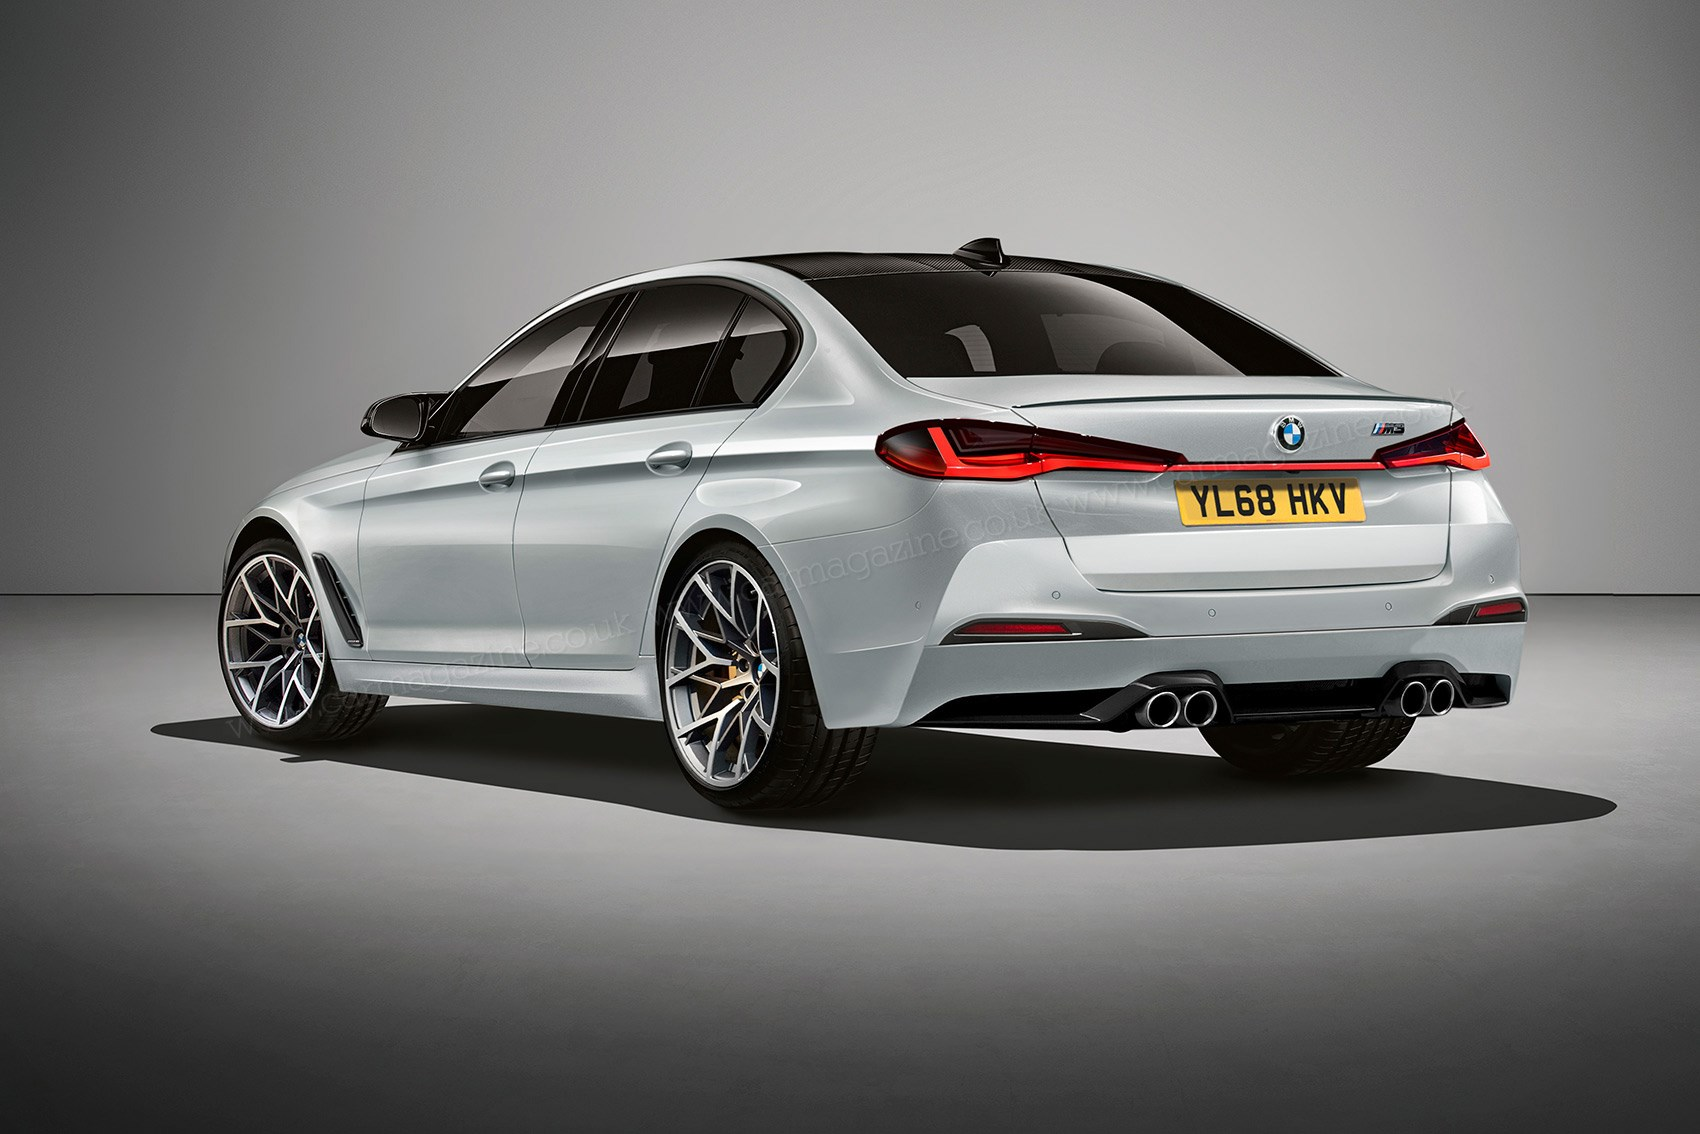 new 2020 bmw m3 codenamed g80 revealed spy photos specs prices on sale date by car magazine. Black Bedroom Furniture Sets. Home Design Ideas